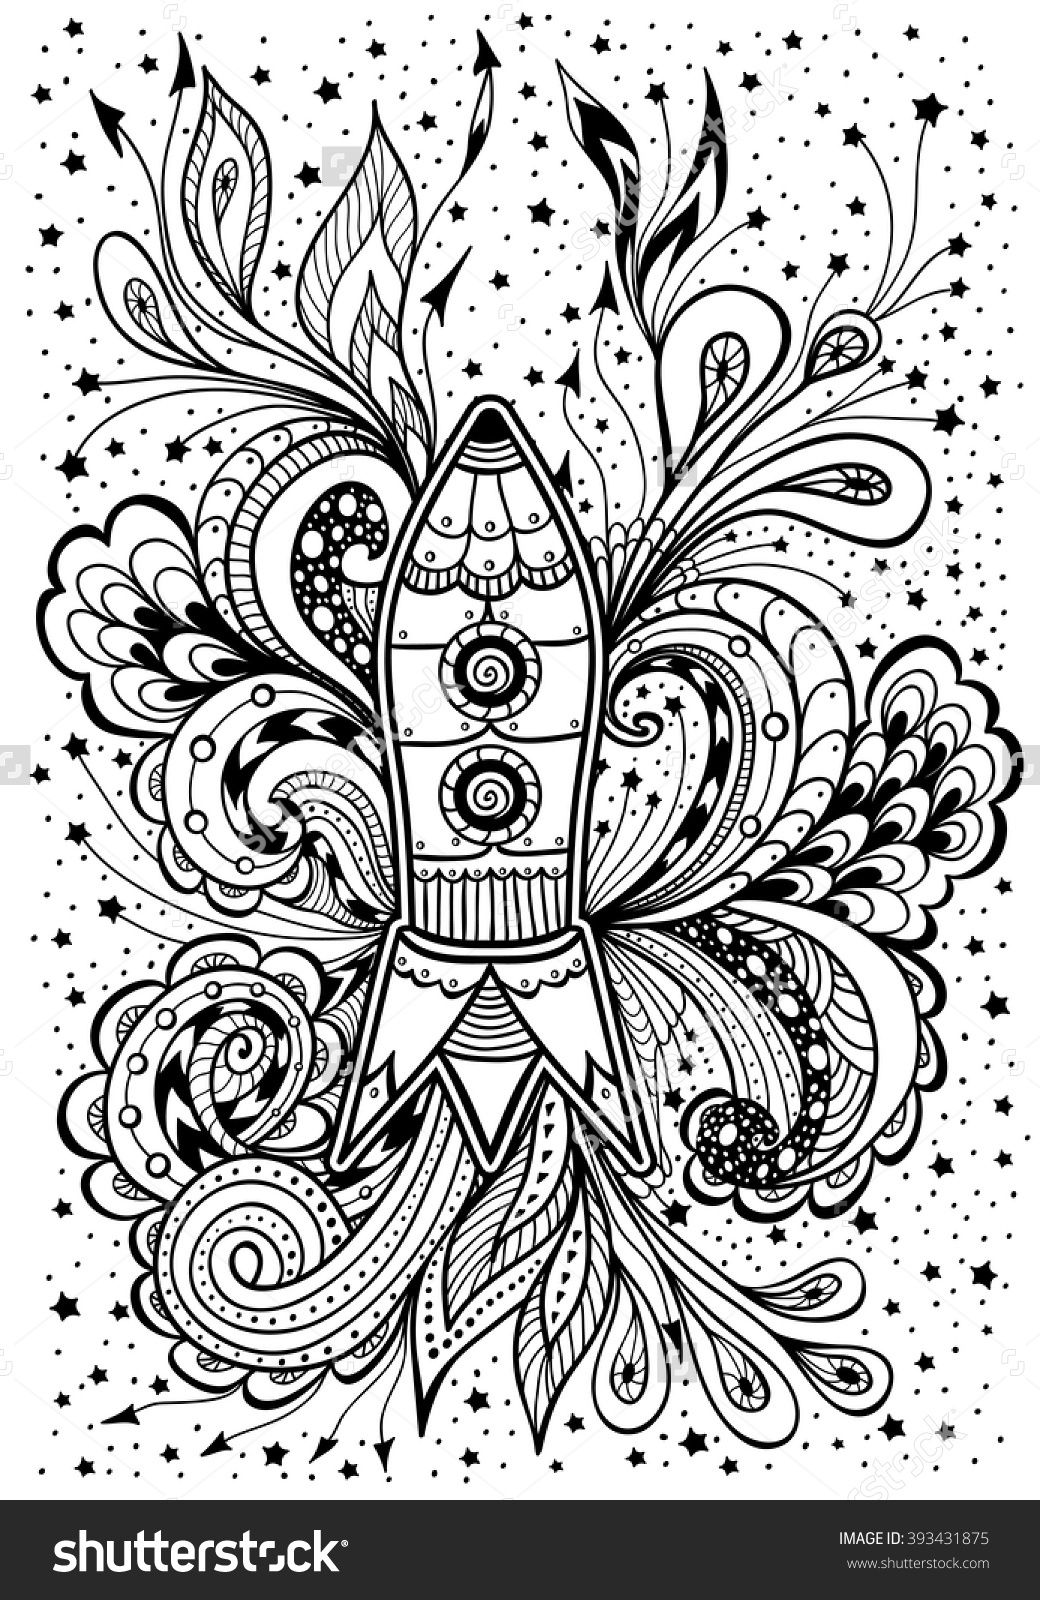 Zendoodle or zentangle rocket in space black on white for coloring